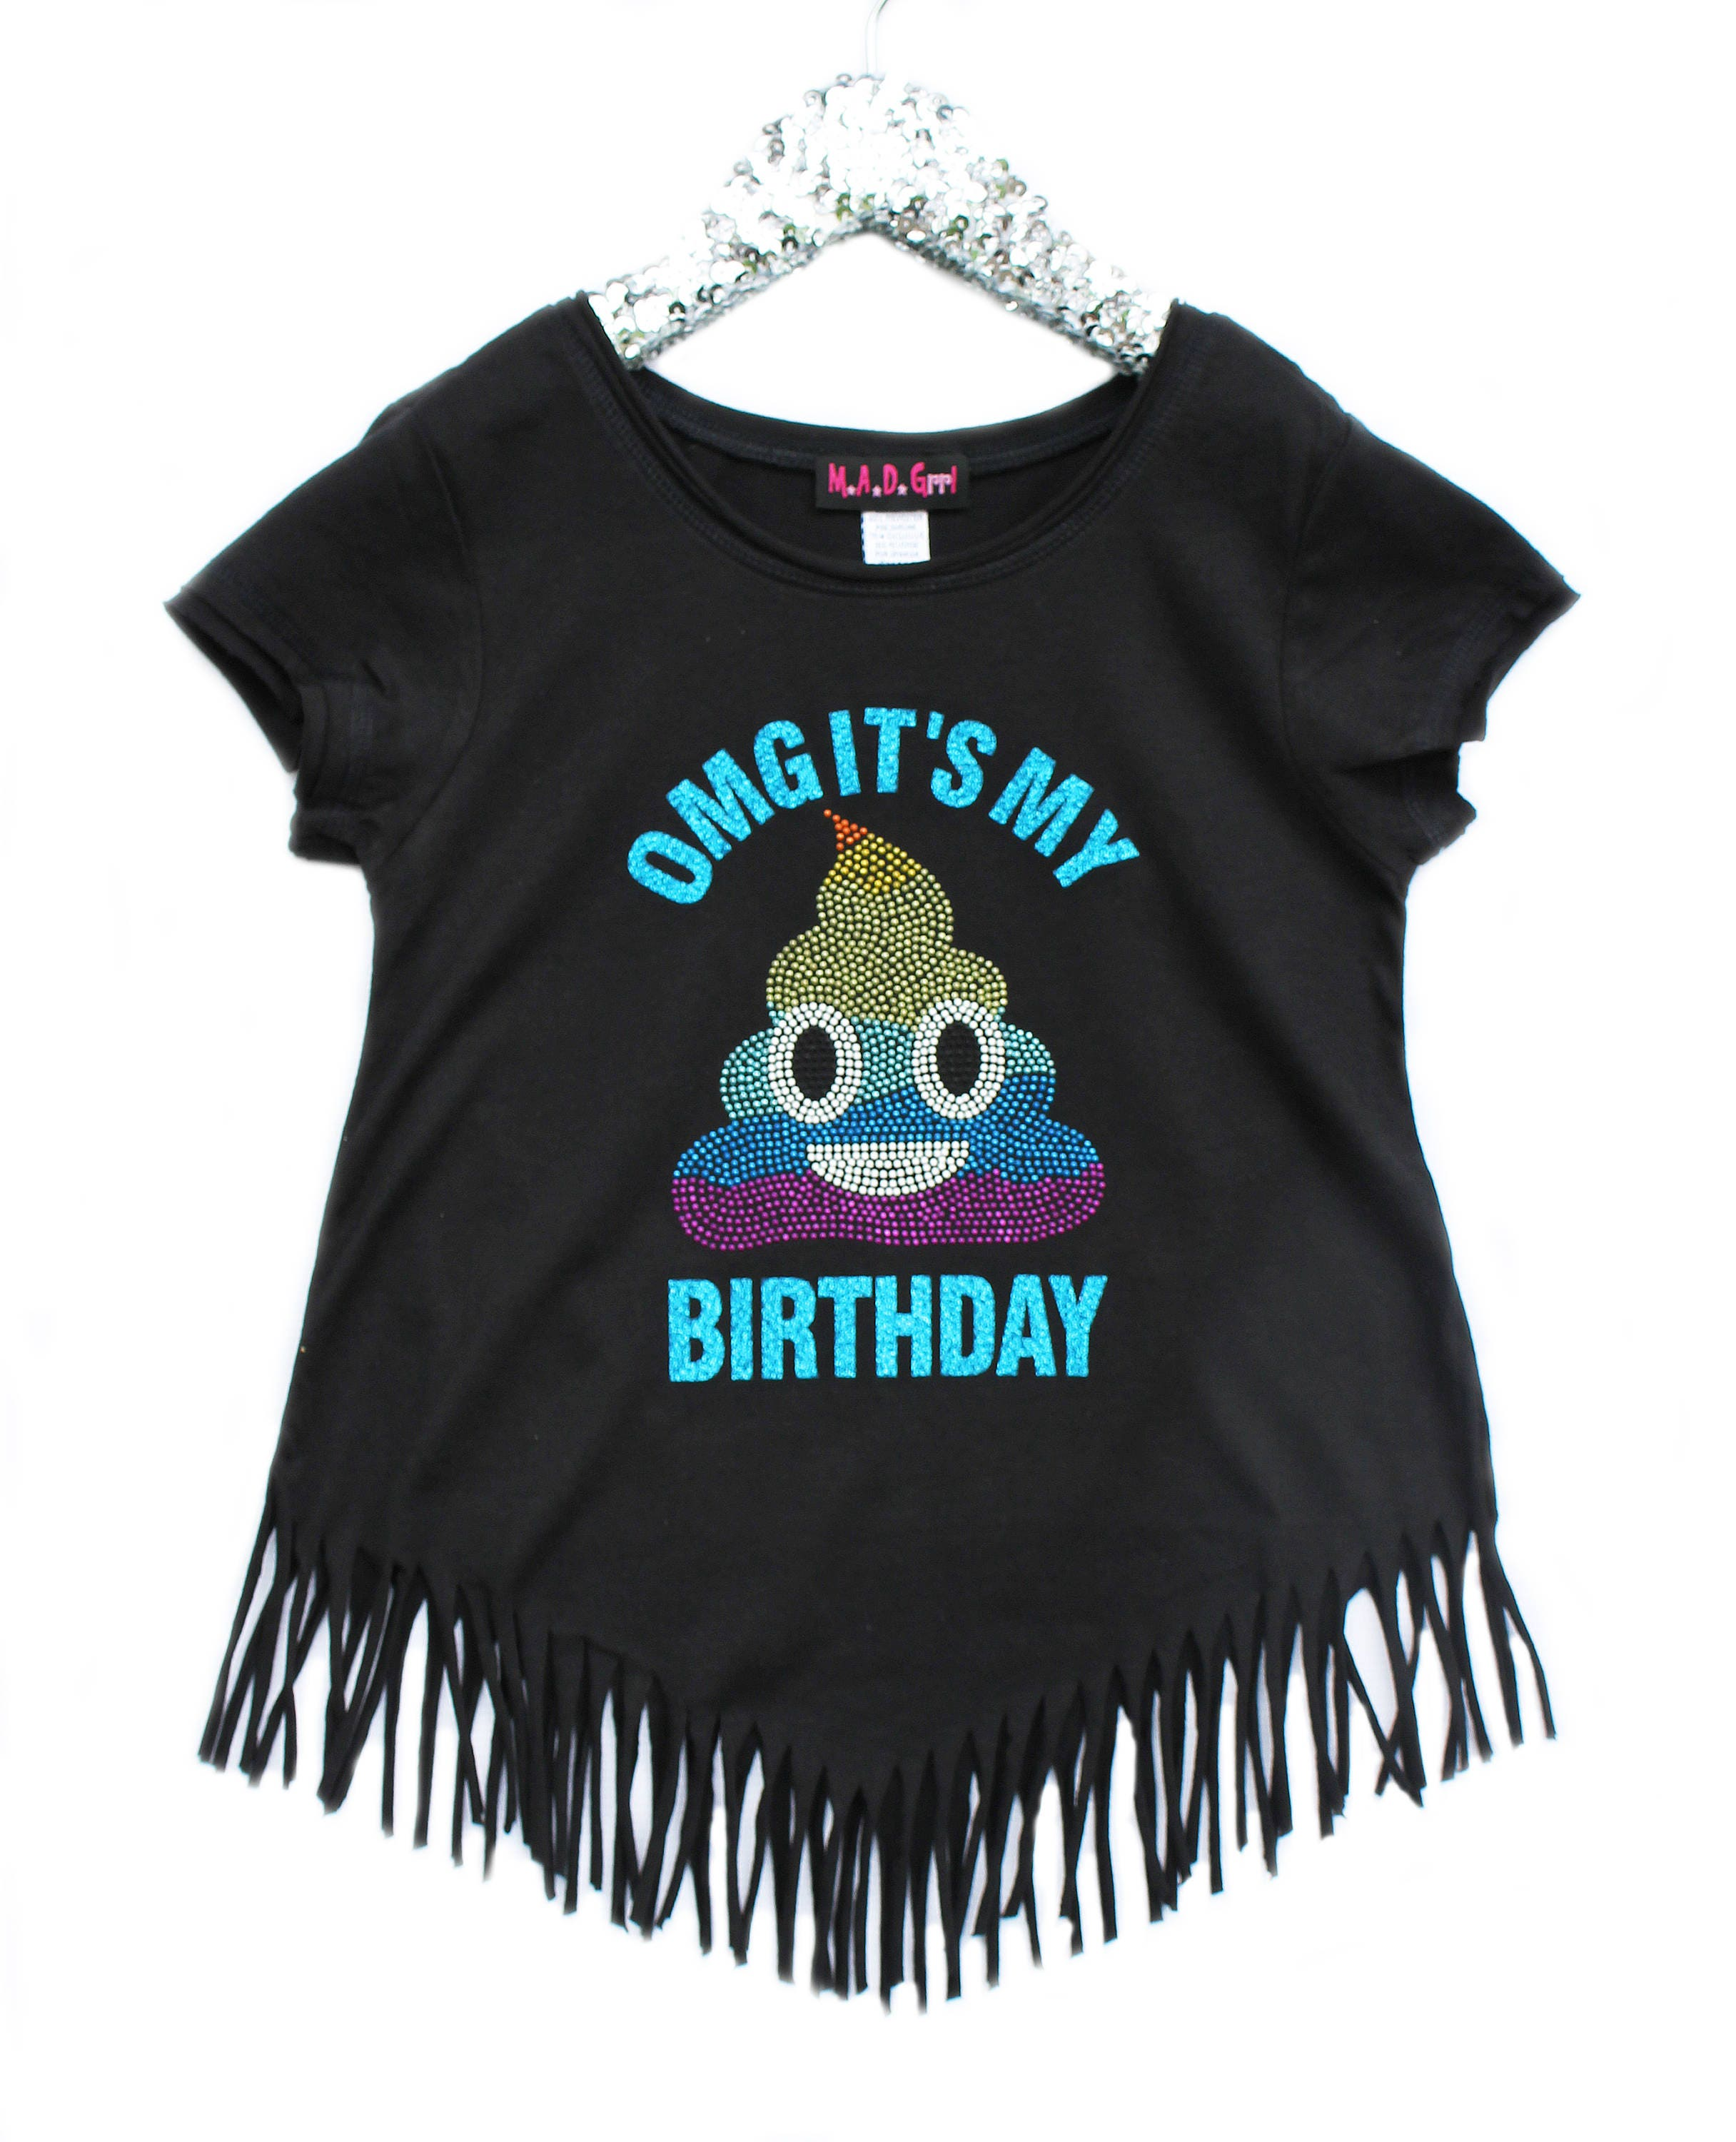 Rainbow Poop Emoji Birthday Shirt Girls